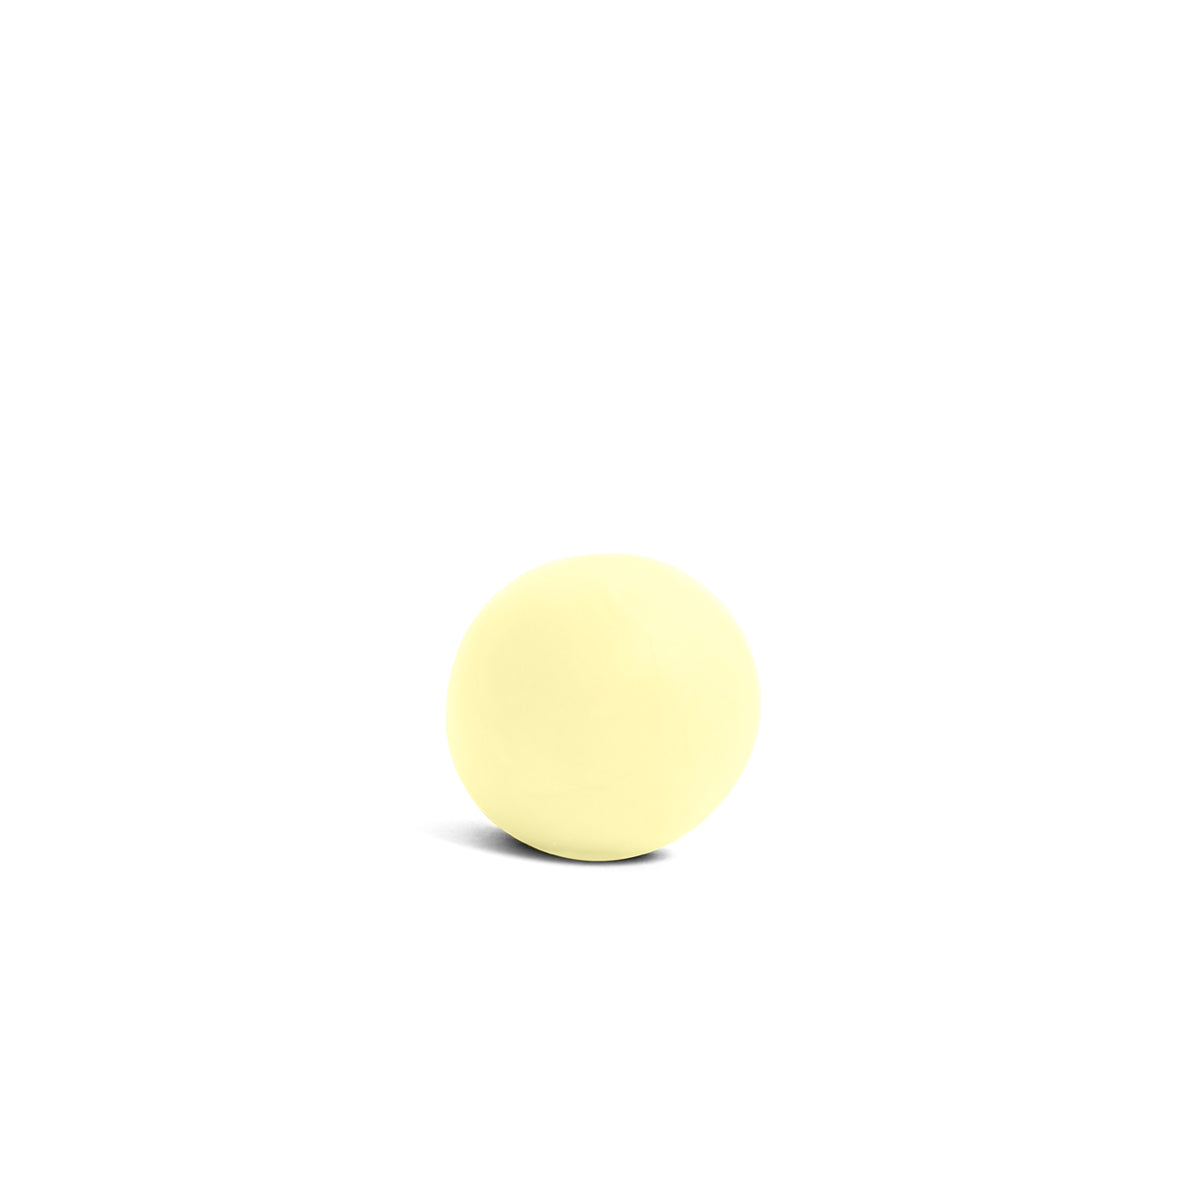 Satin Ice Pastel Yellow Vanilla Fondant - 2lb. Pail - Satin Ice